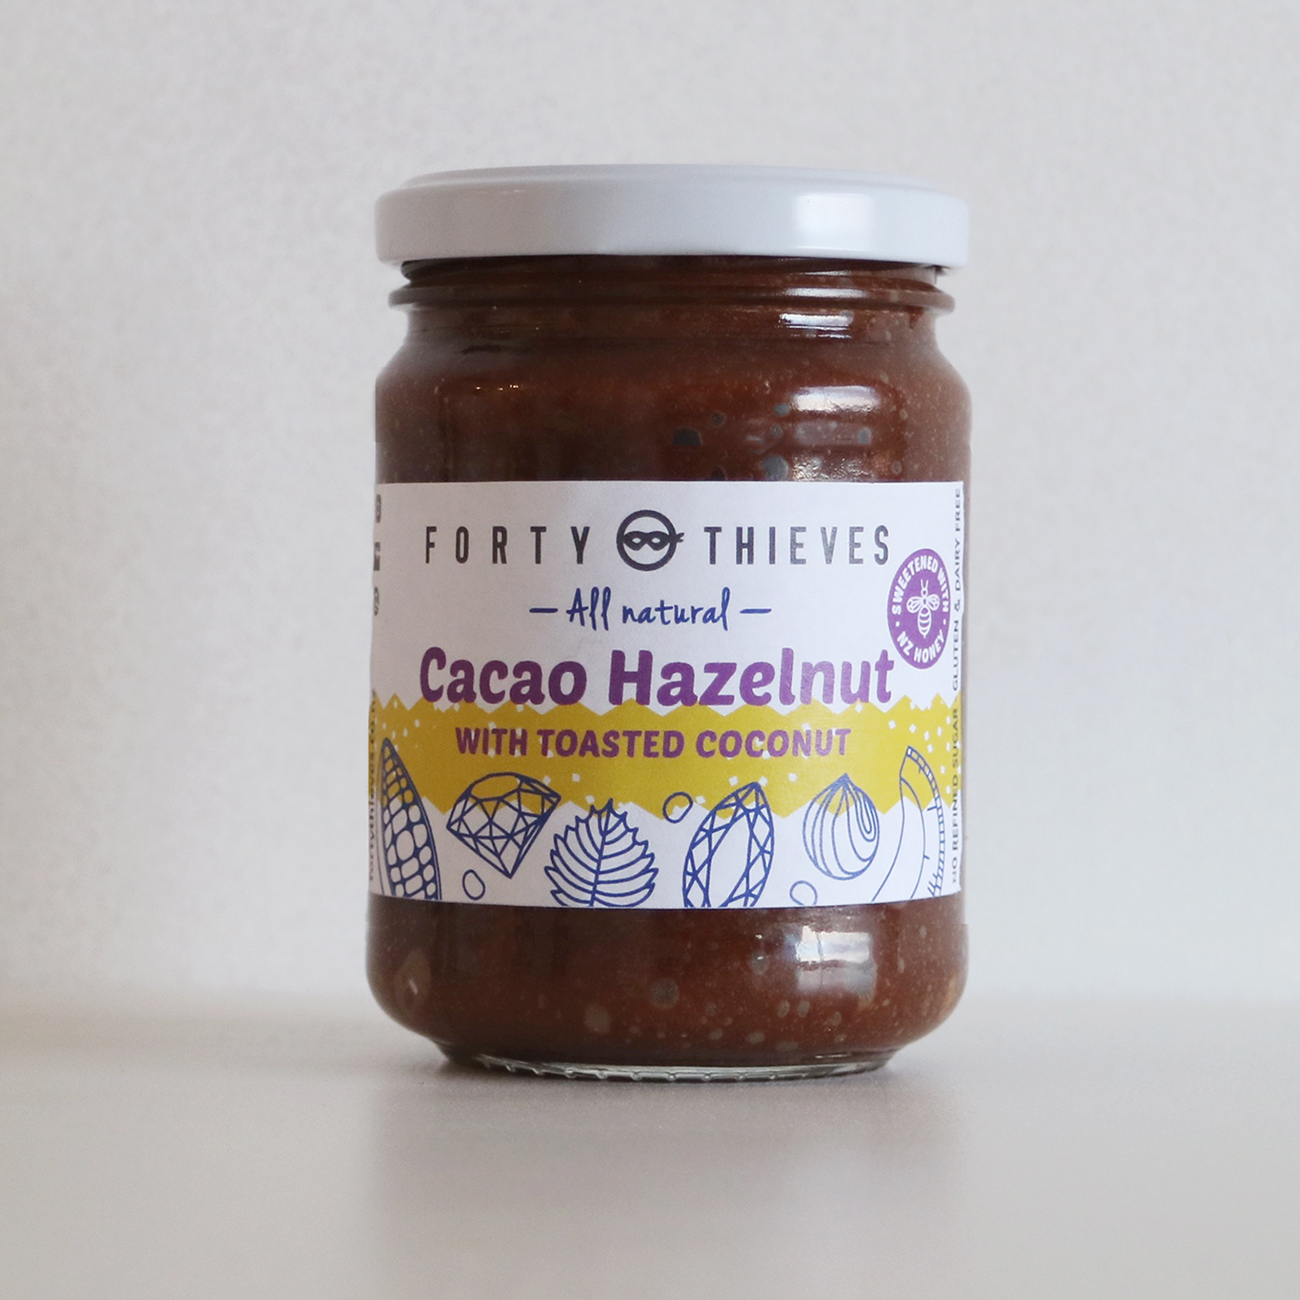 fortythieves_cacao-hazelnut-square_1300